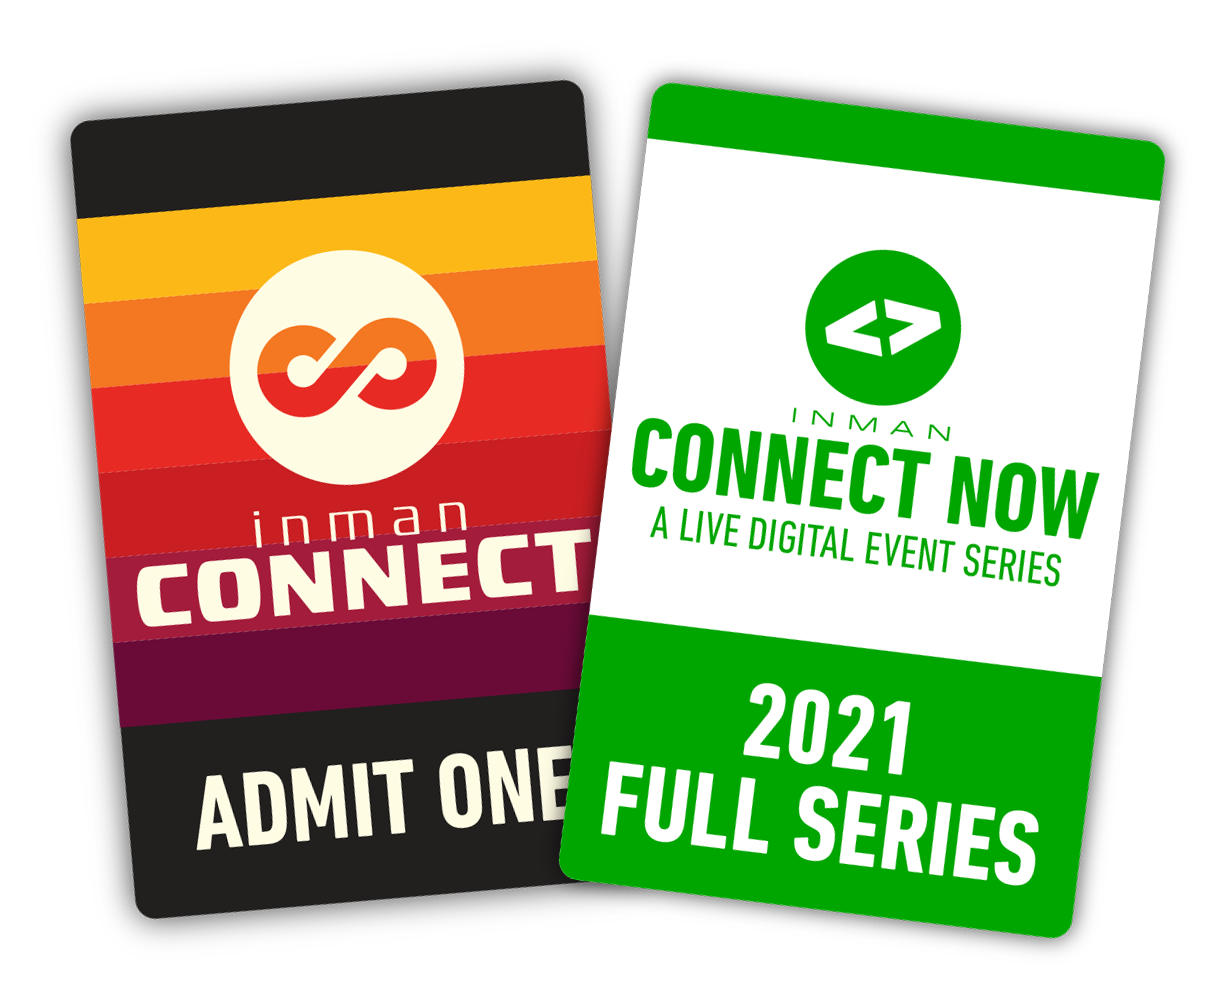 10-Event Bundle: January Inman Connect + Connect Now Full Series